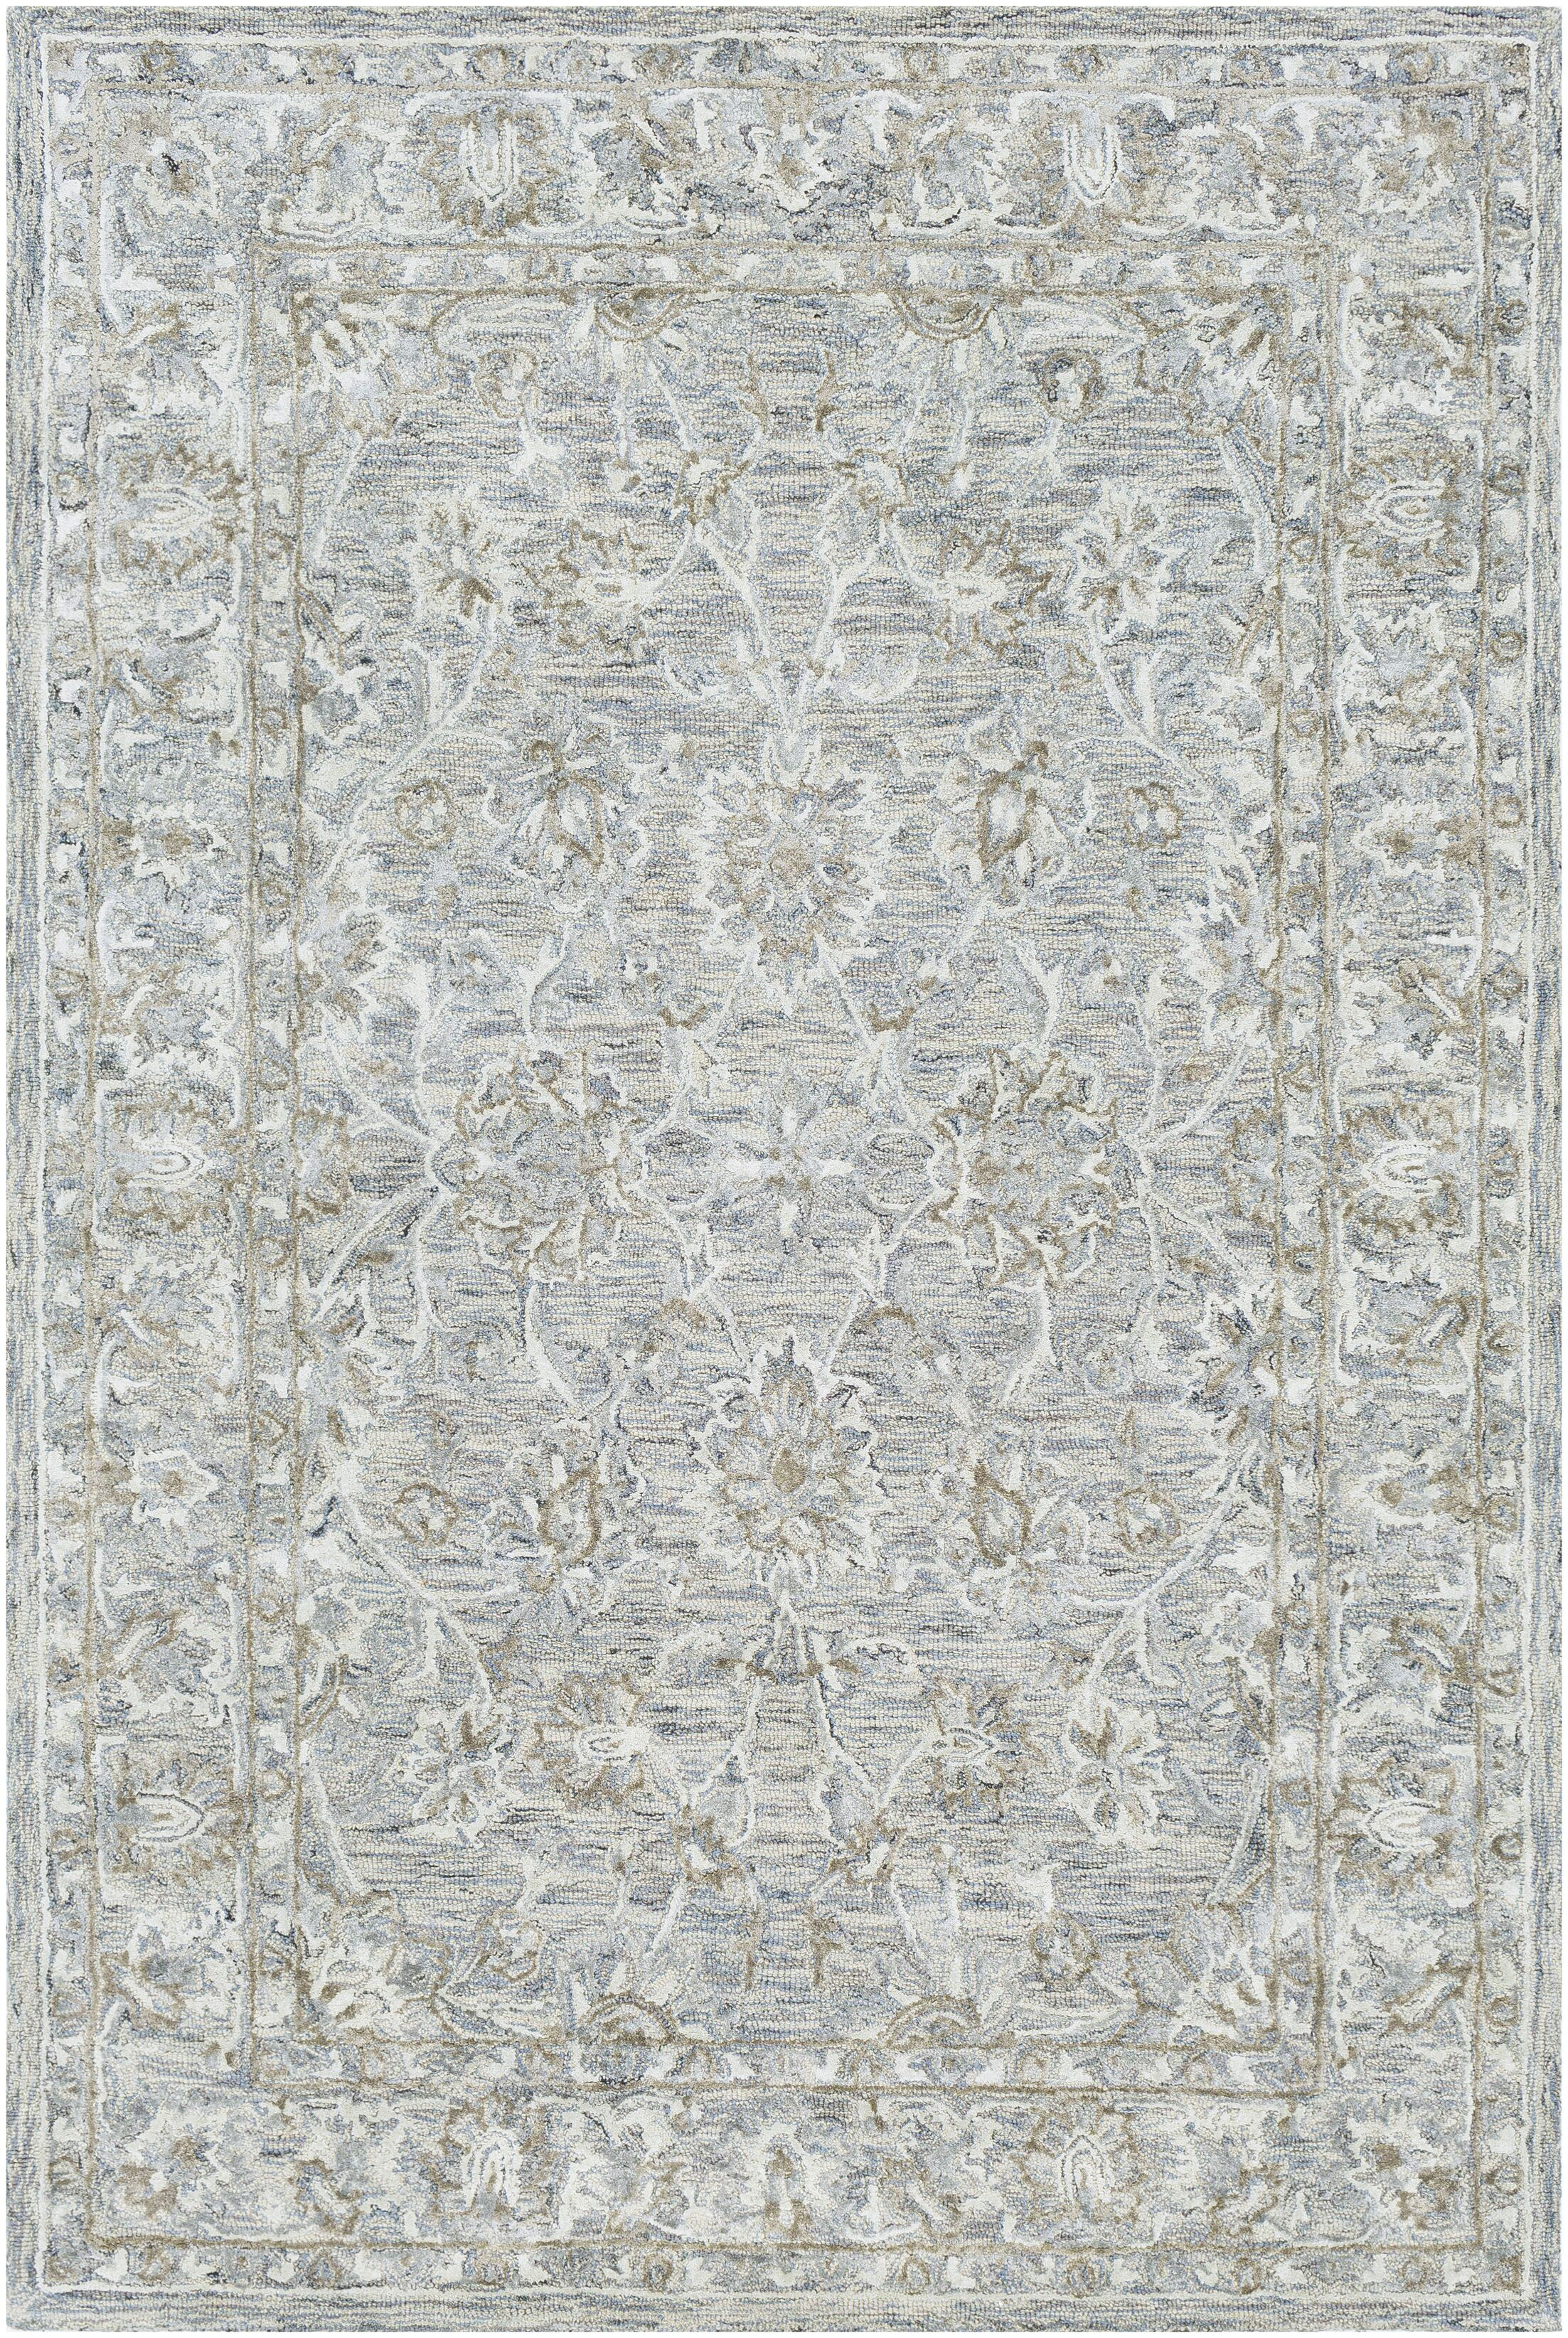 Jambi Traditional Hand-Tufted Wool Light Blue/Camel Area Rug Rug Size: Rectangle 2' x 3'